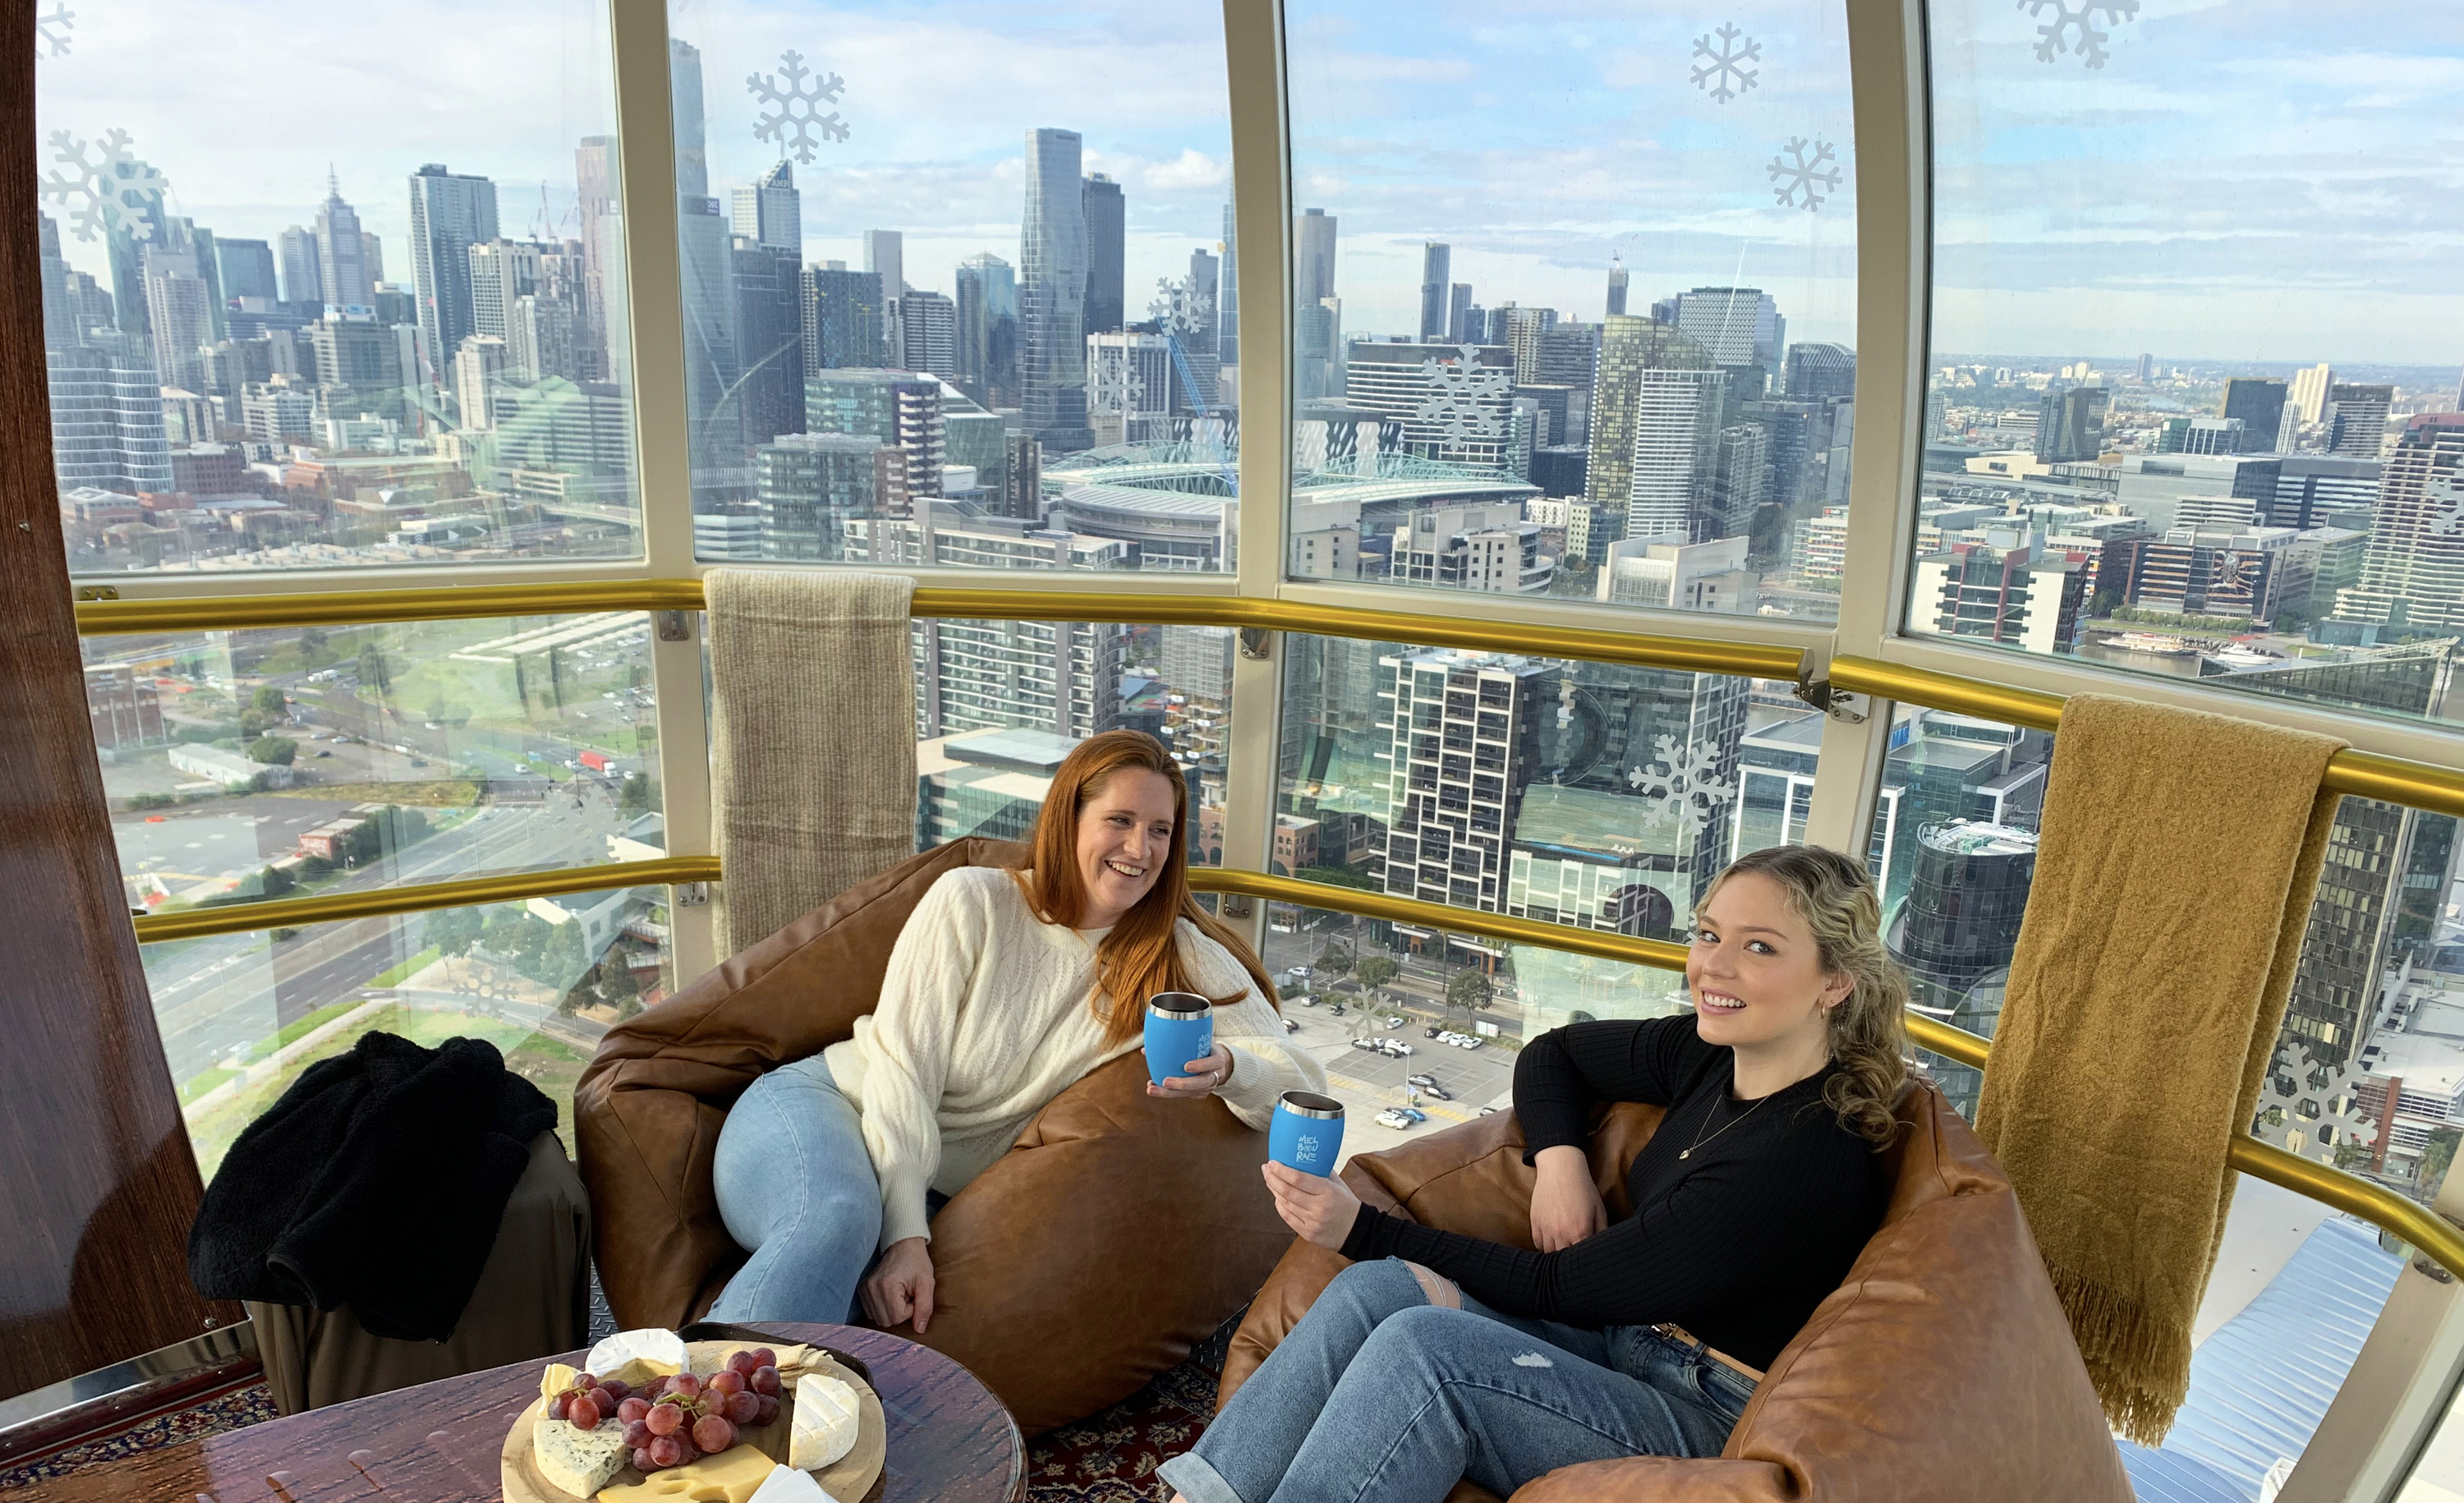 Two people on beanbags on Melbourne Star